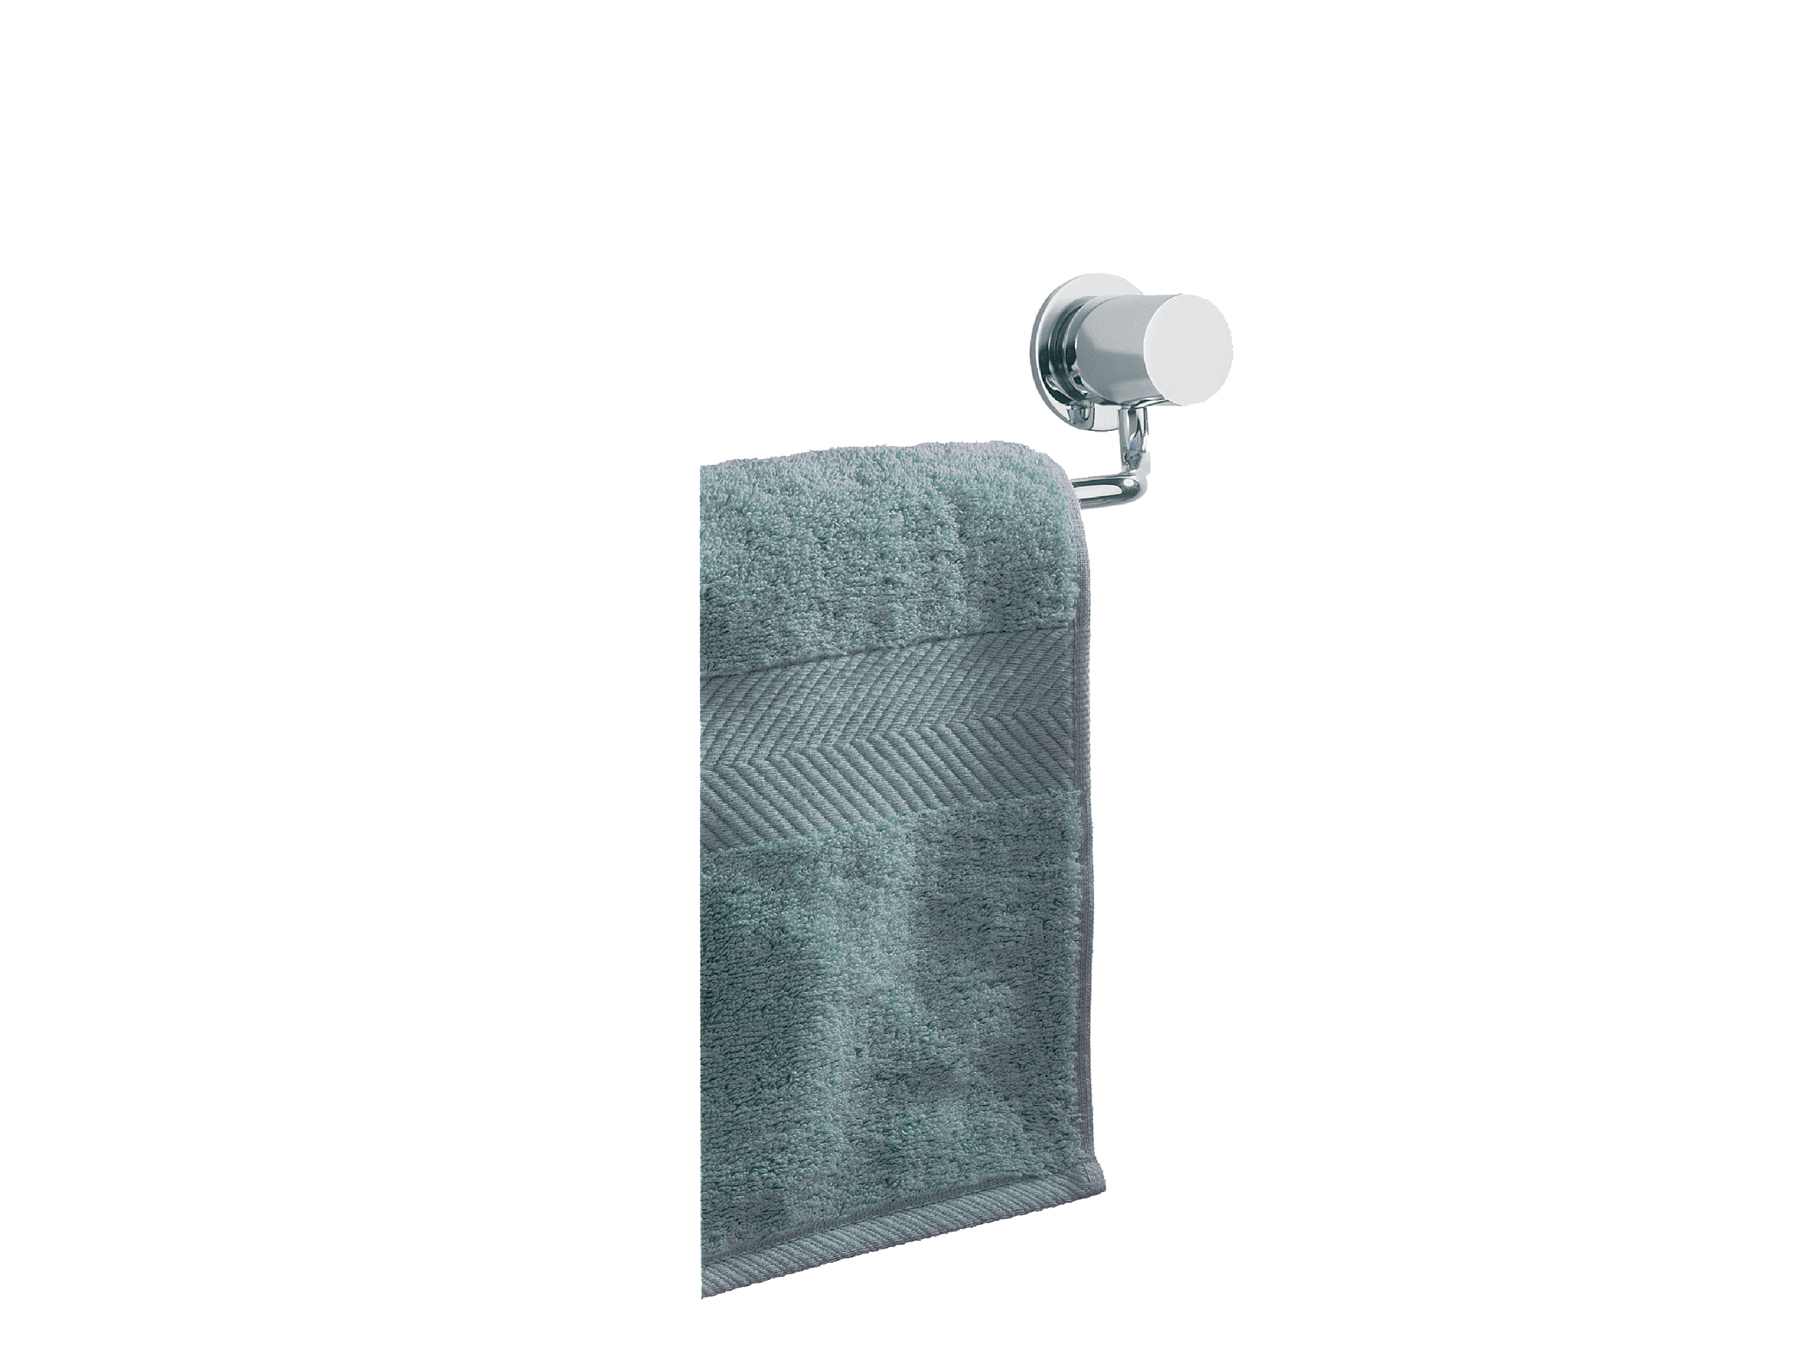 Towel holder 6231.--.13